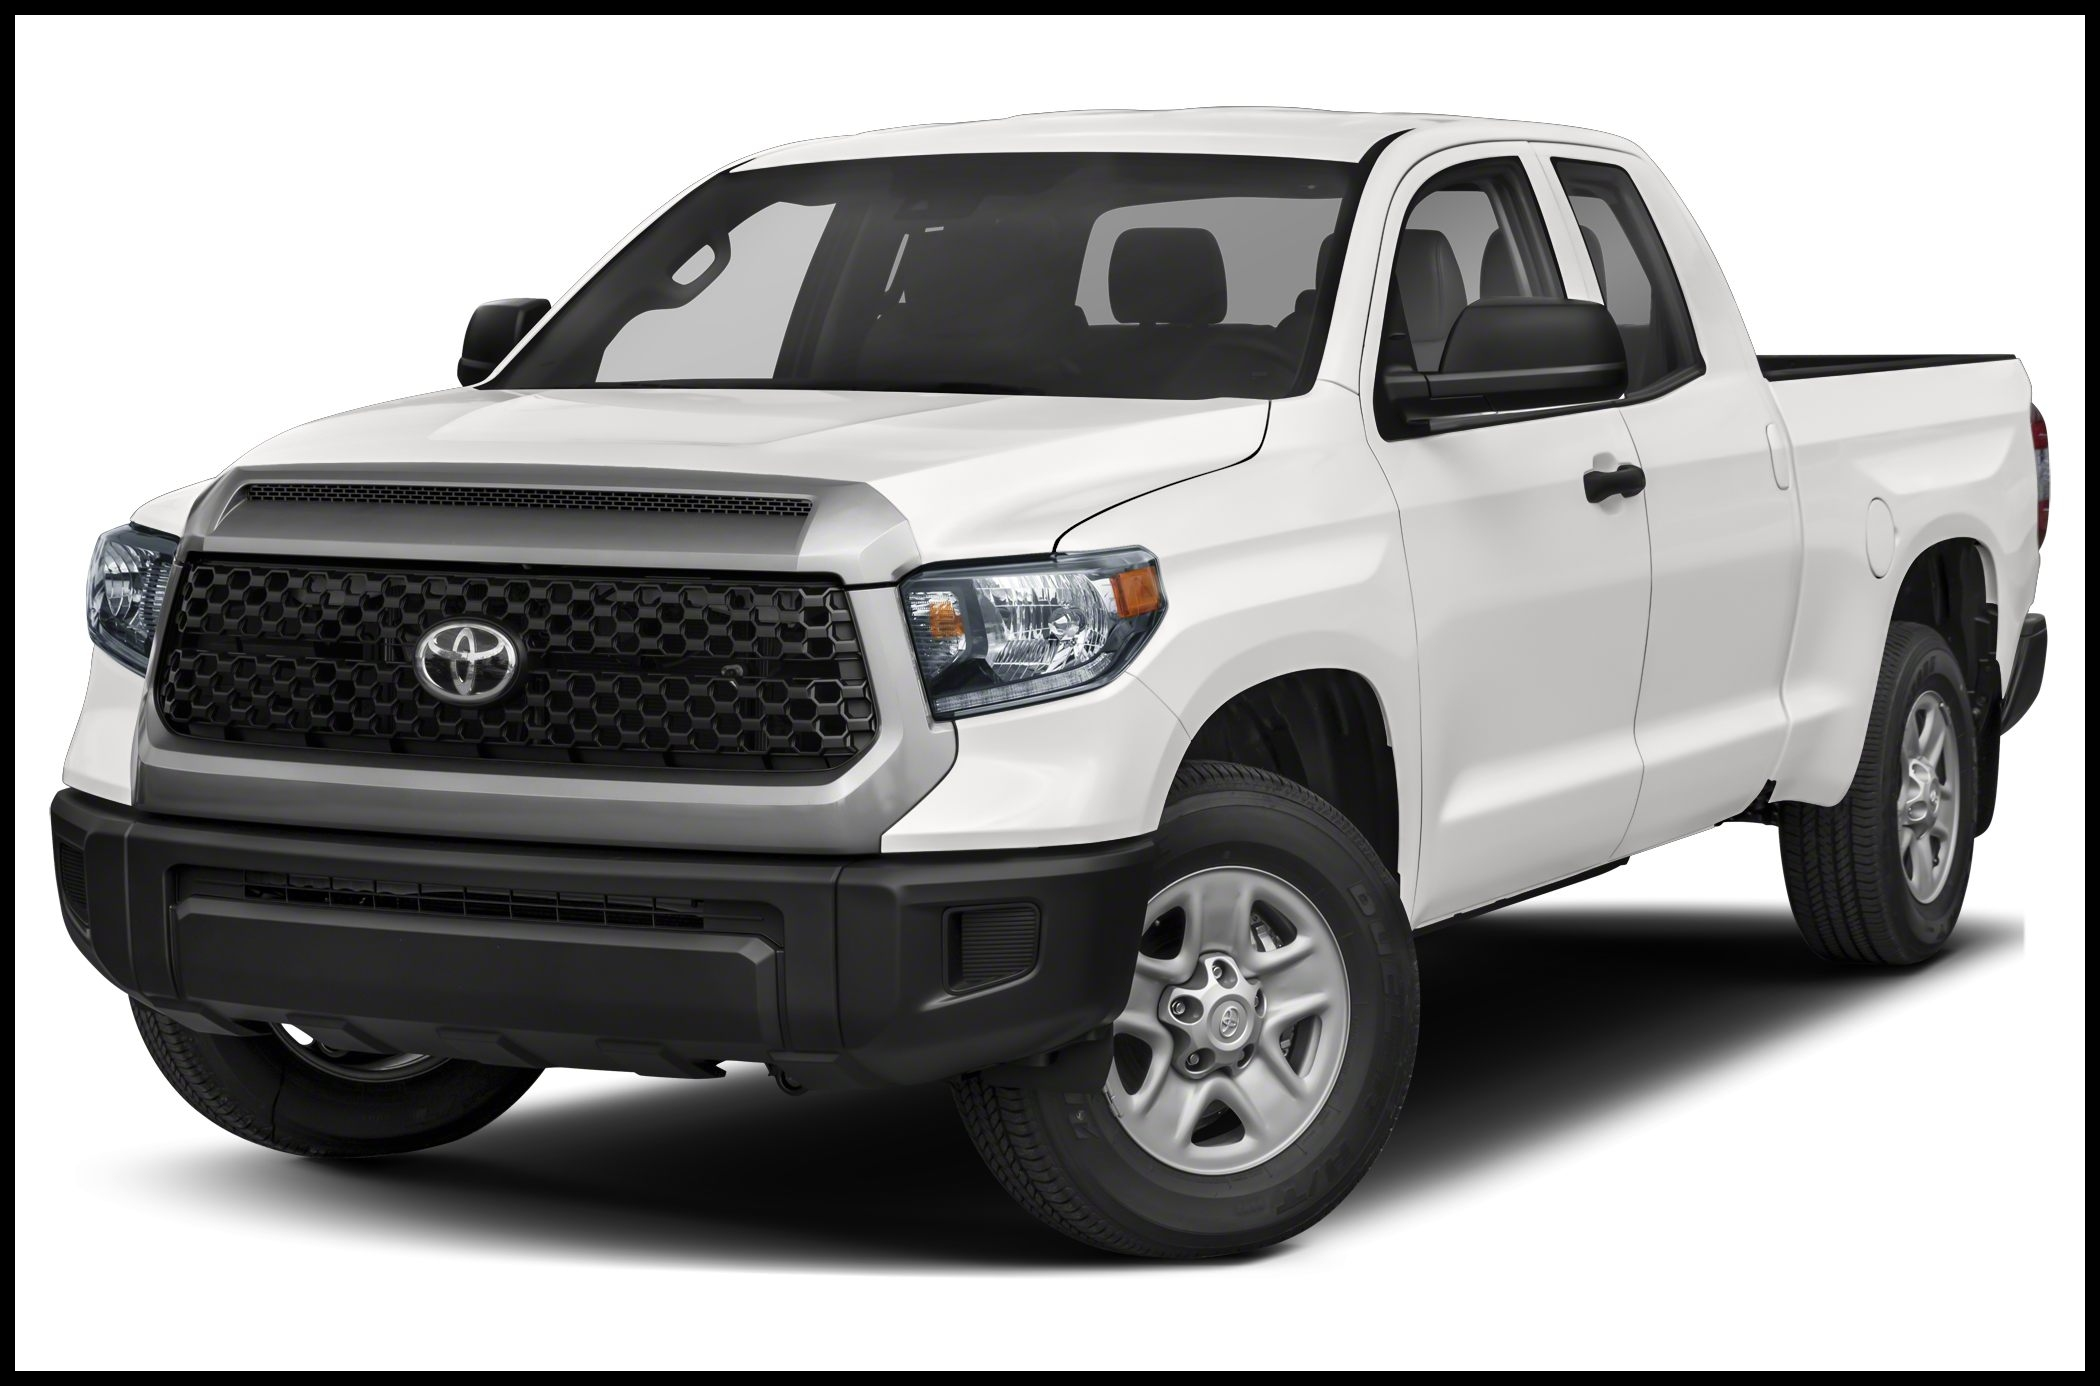 2018 Toyota Tundra SR 5 7L V8 4x4 Double Cab Long Bed 8 ft box 164 6 in WB for Sale